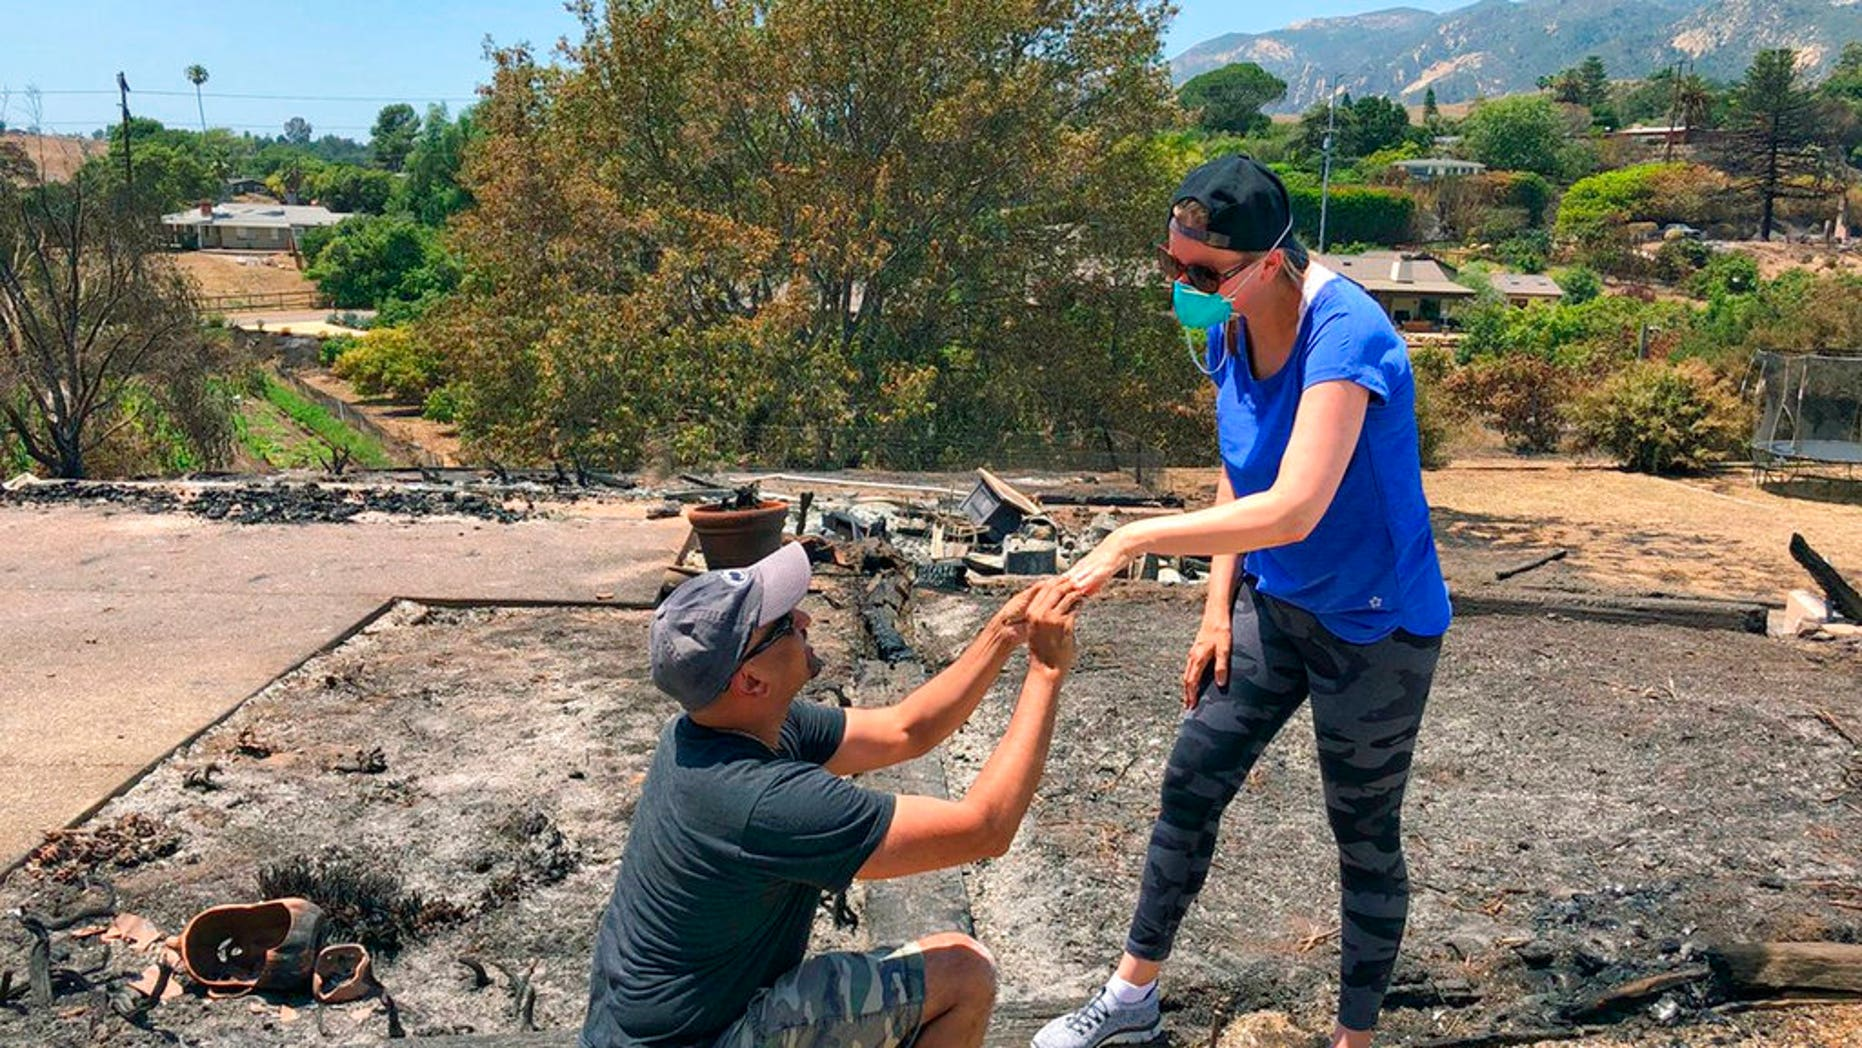 Ishu Rao gets down on one knee to return his wife's wedding ring to her next to the charred remains of their Goleta, Calif. home.